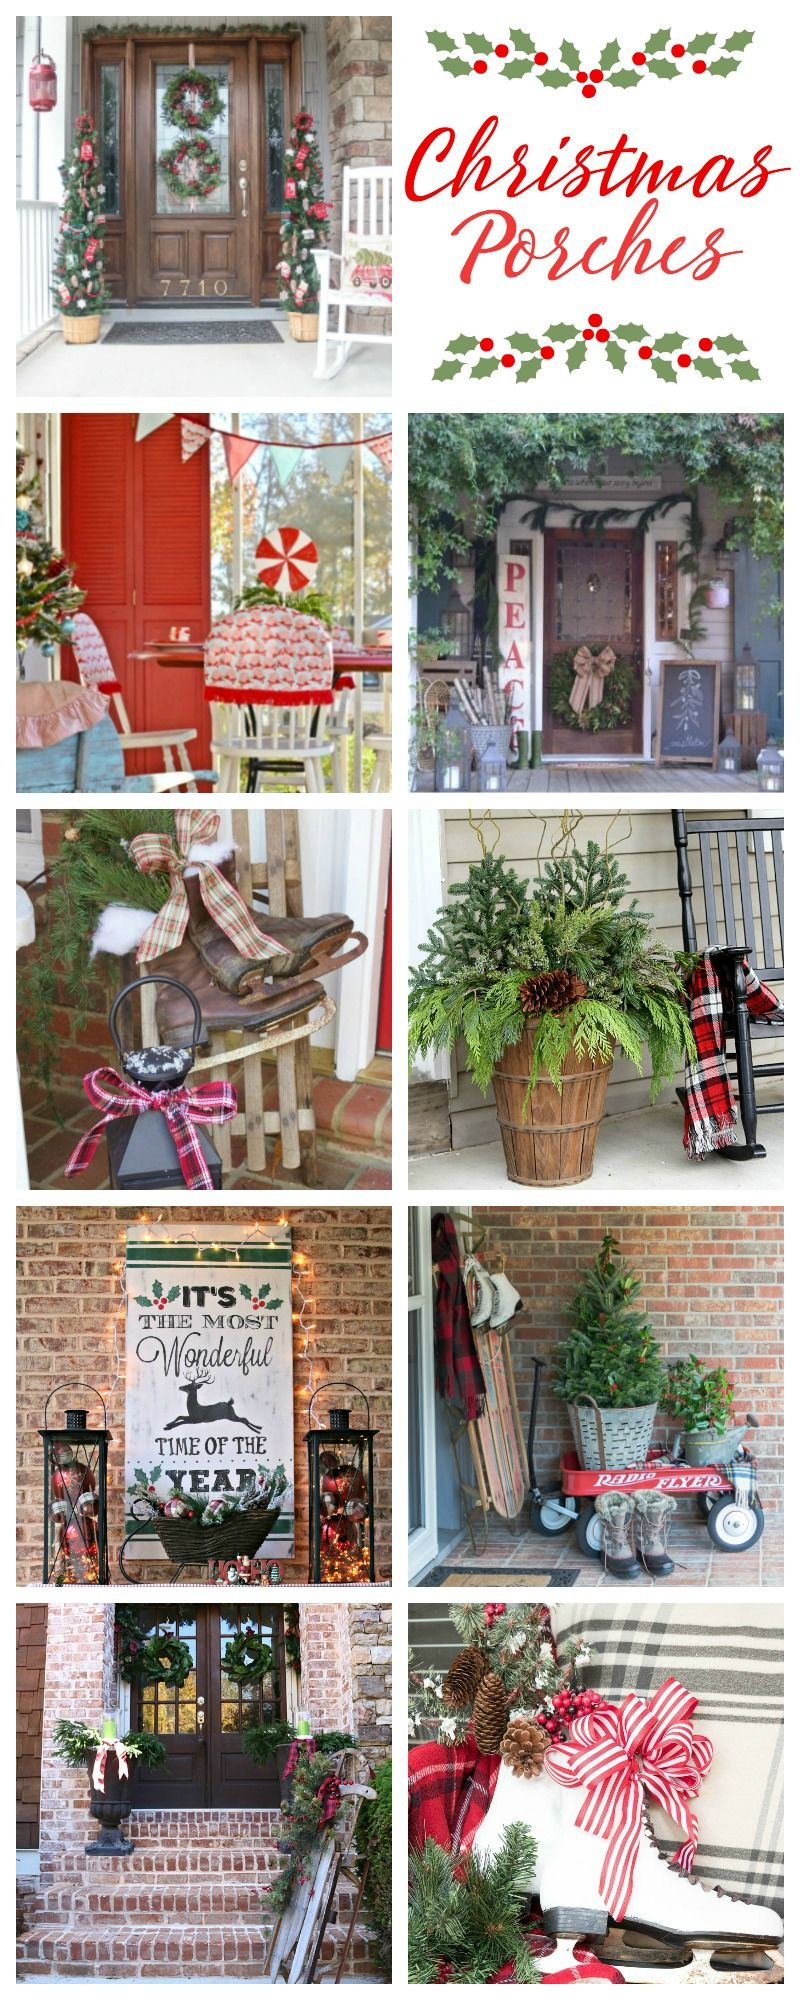 My Urban Farmhouse Christmas Front Porch Worthing Court Christmas Porch Decor Front Porch Christmas Decor Christmas Porch